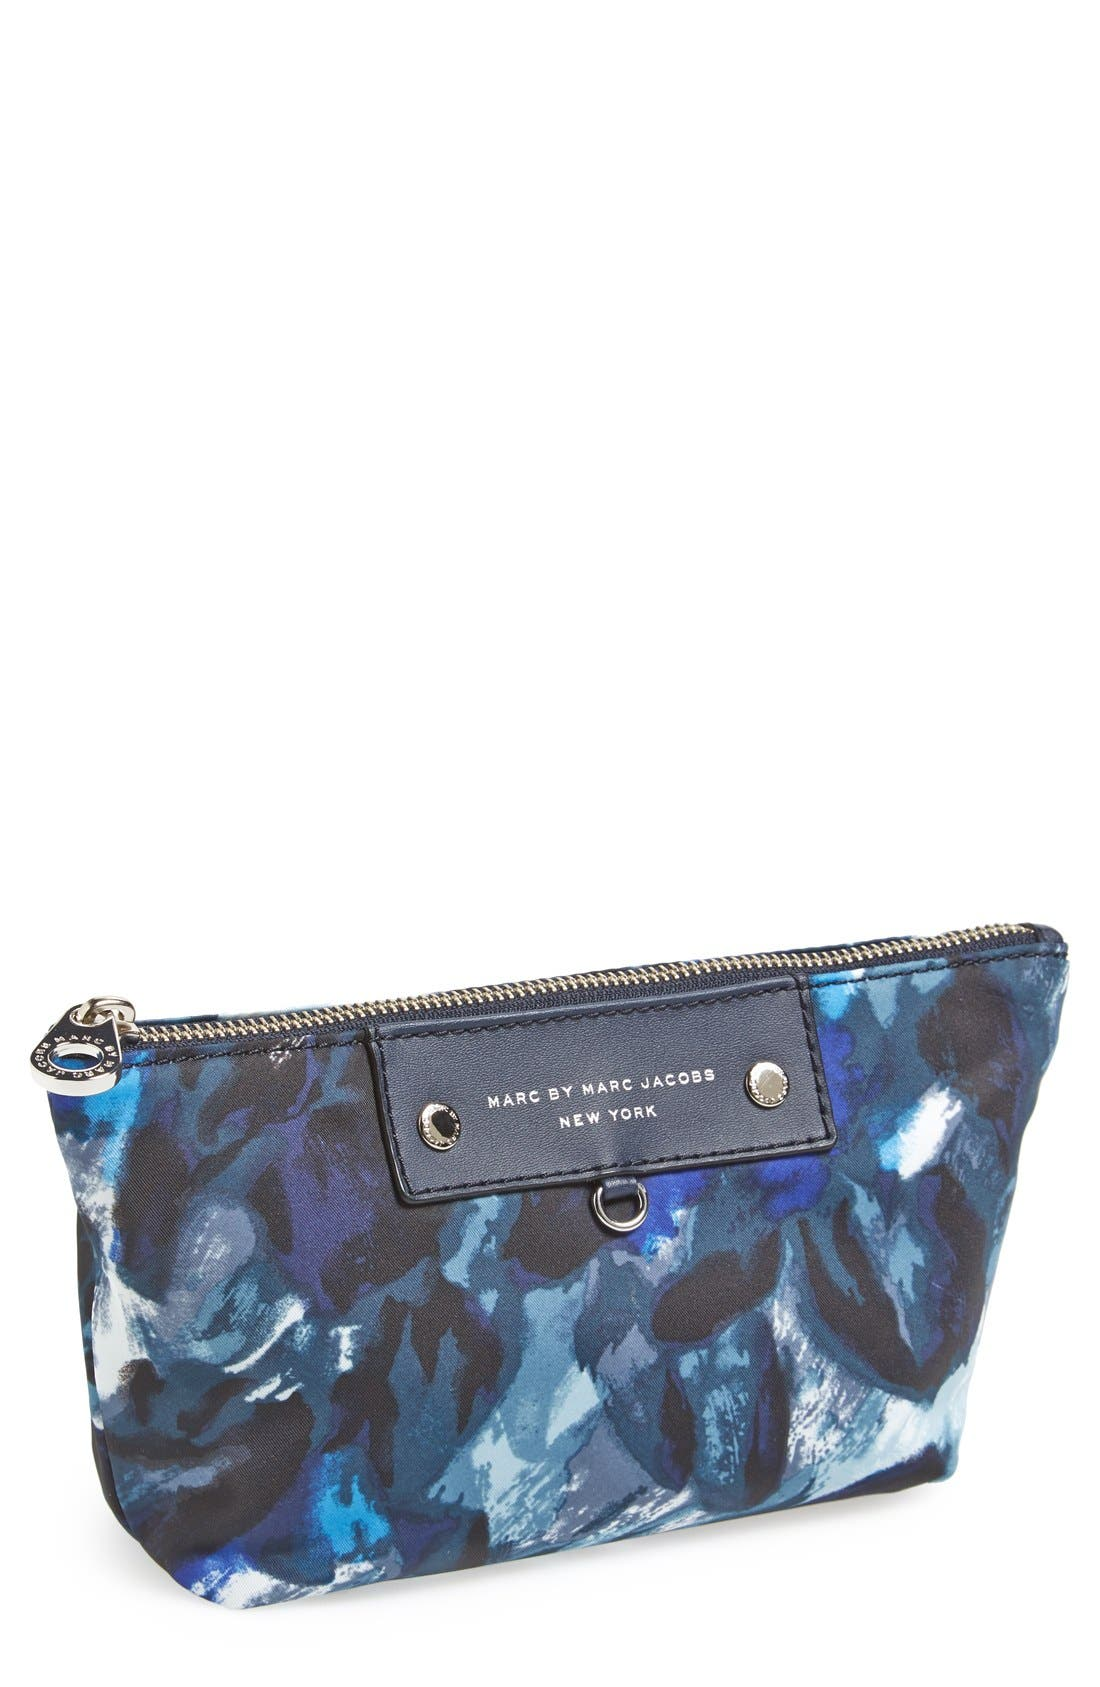 Main Image - MARC BY MARC JACOBS 'Preppy' Cosmetics Case